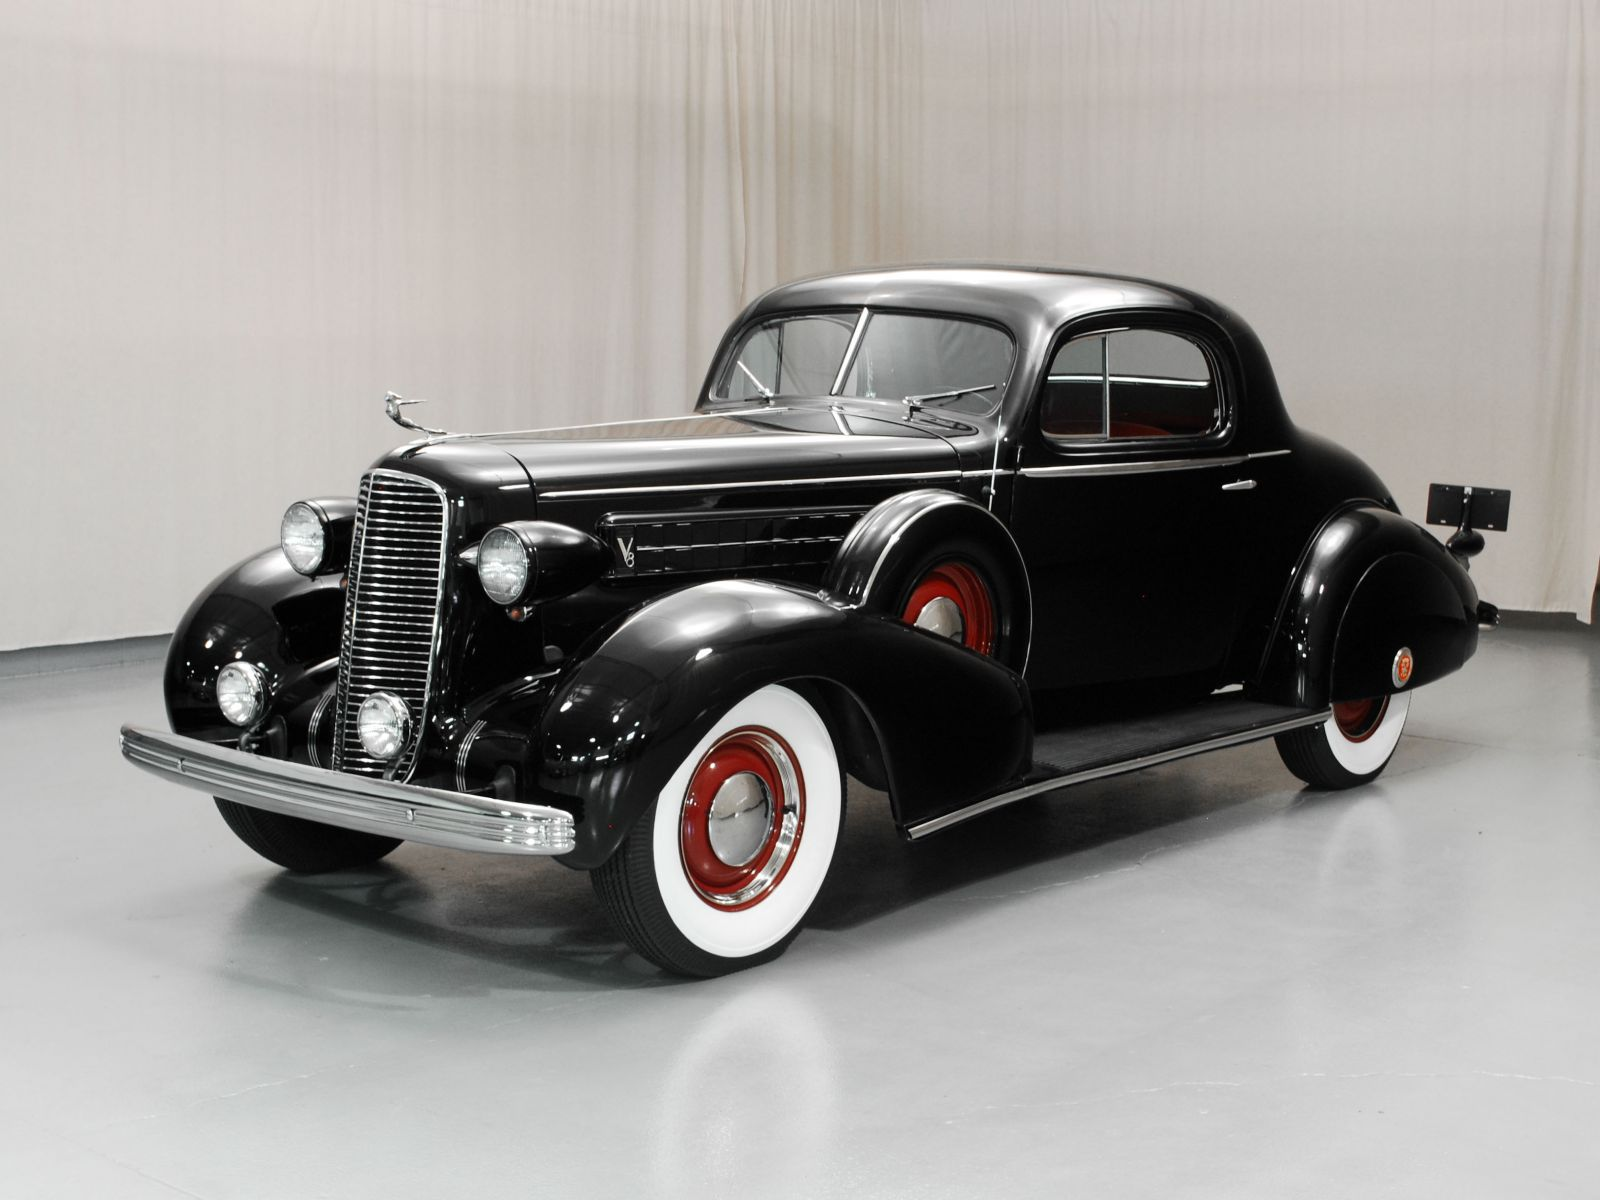 Car Repair Insurance >> 1936 Cadillac Coupe